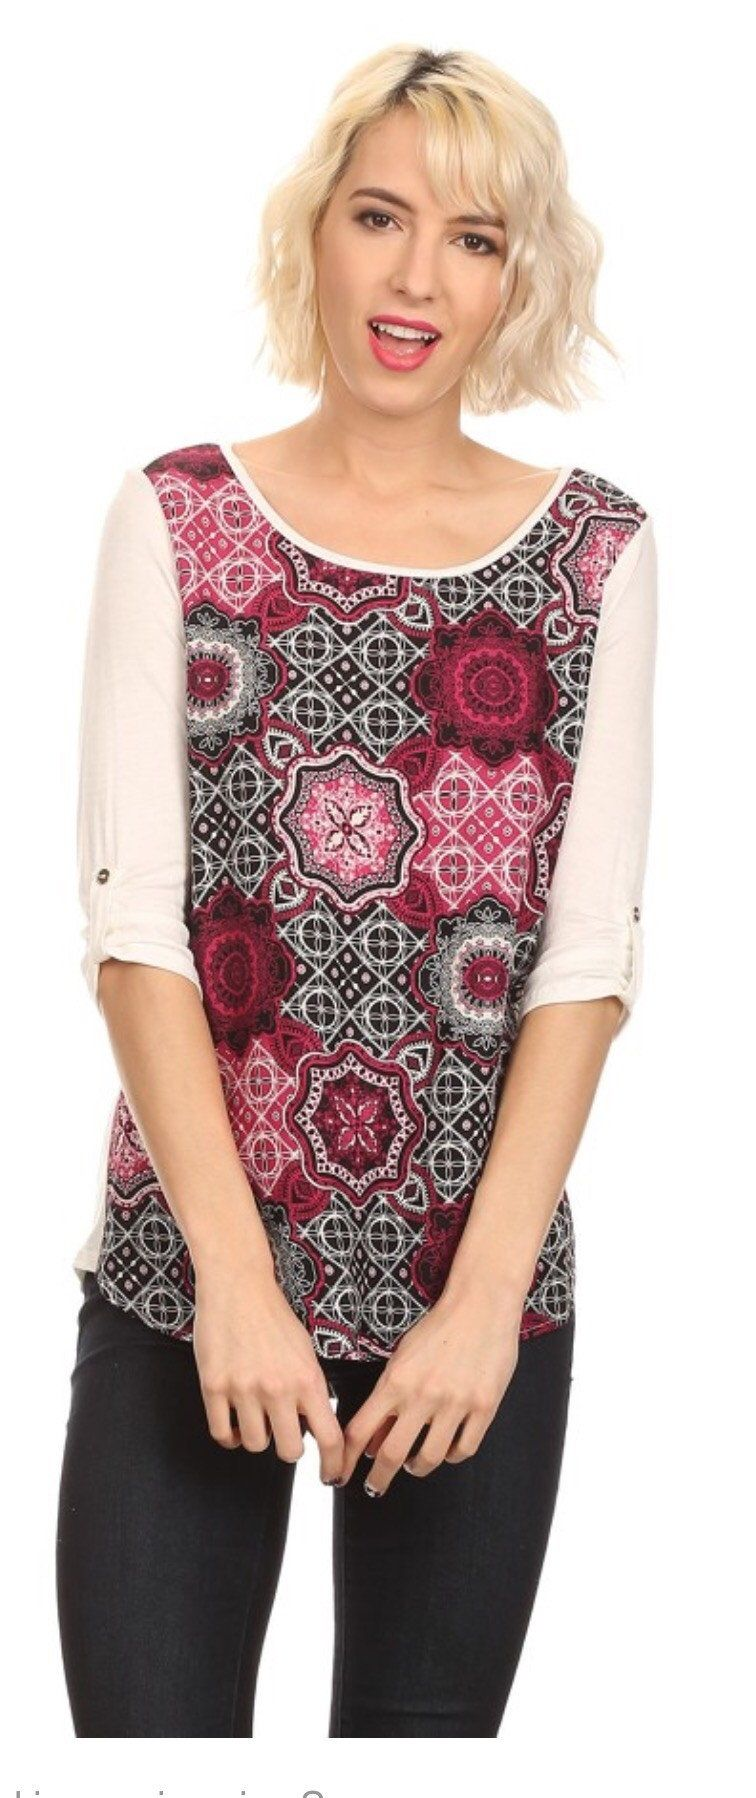 Women's Pink Raglan Tunic Top 3/4 Sleeve - MomMe and More Matching Mommy and Me Clothing